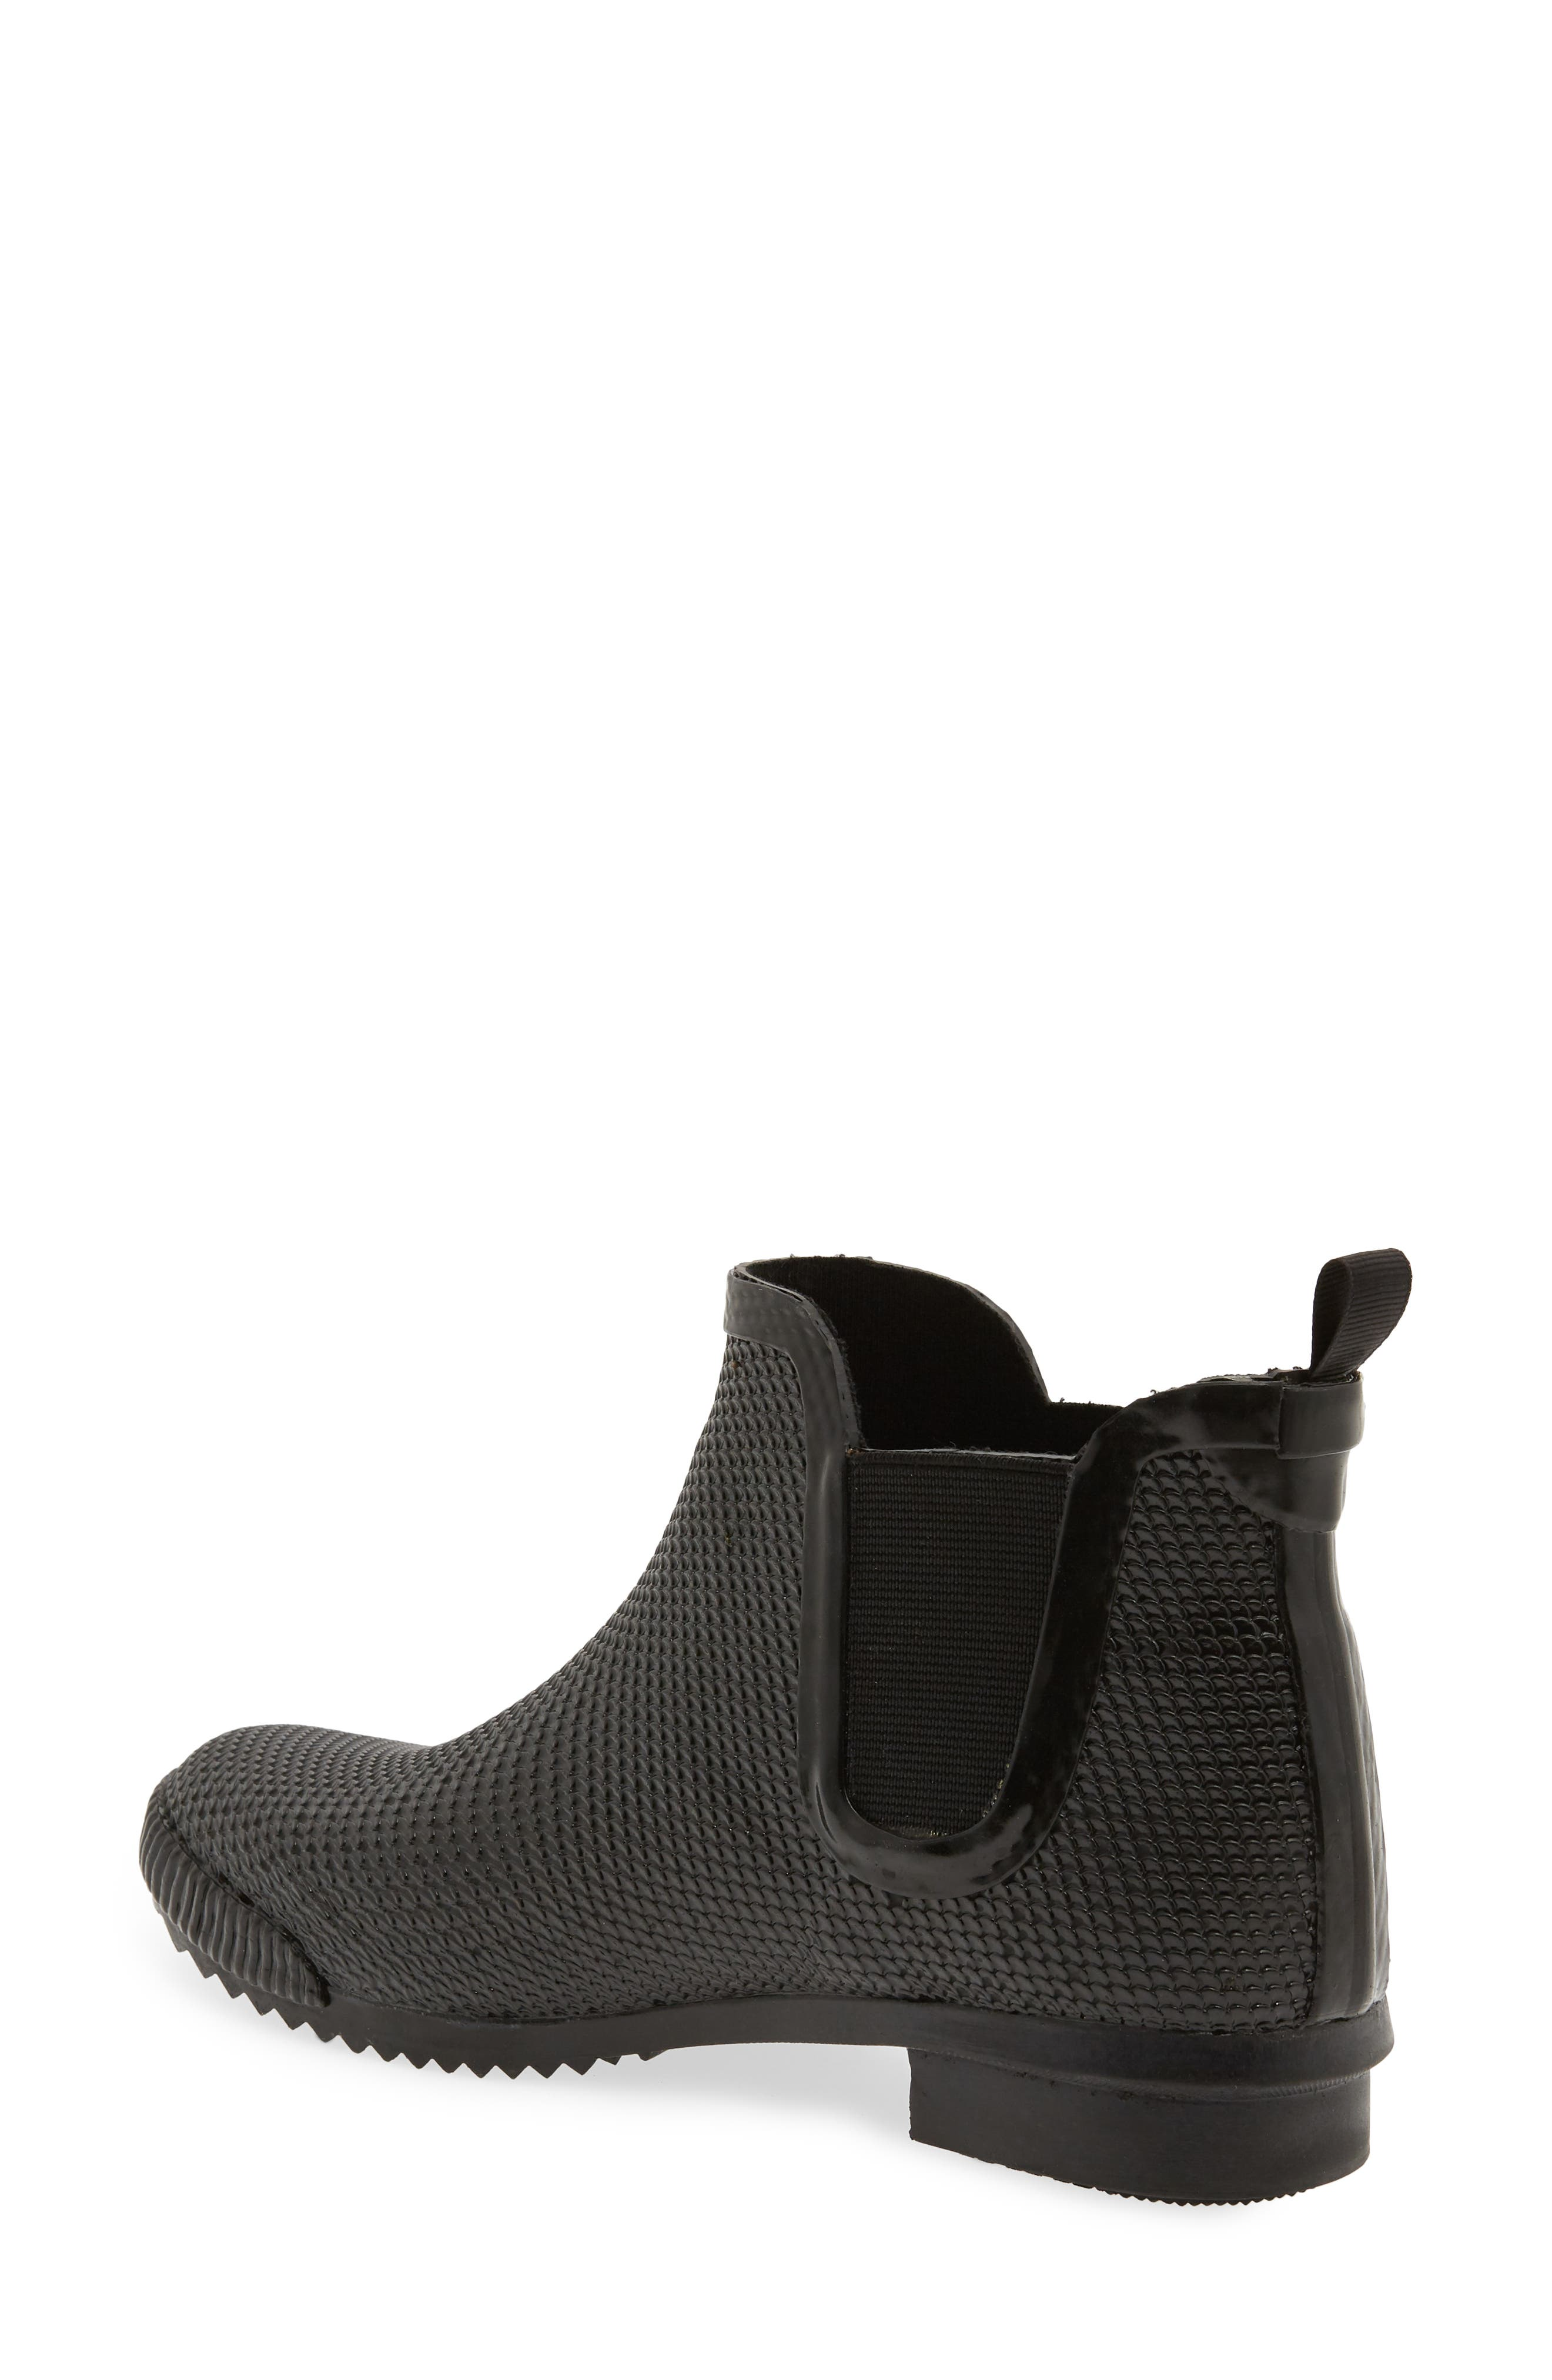 Regent Chelsea Rain Boot,                             Alternate thumbnail 2, color,                             BLACK SNAKE PRINT